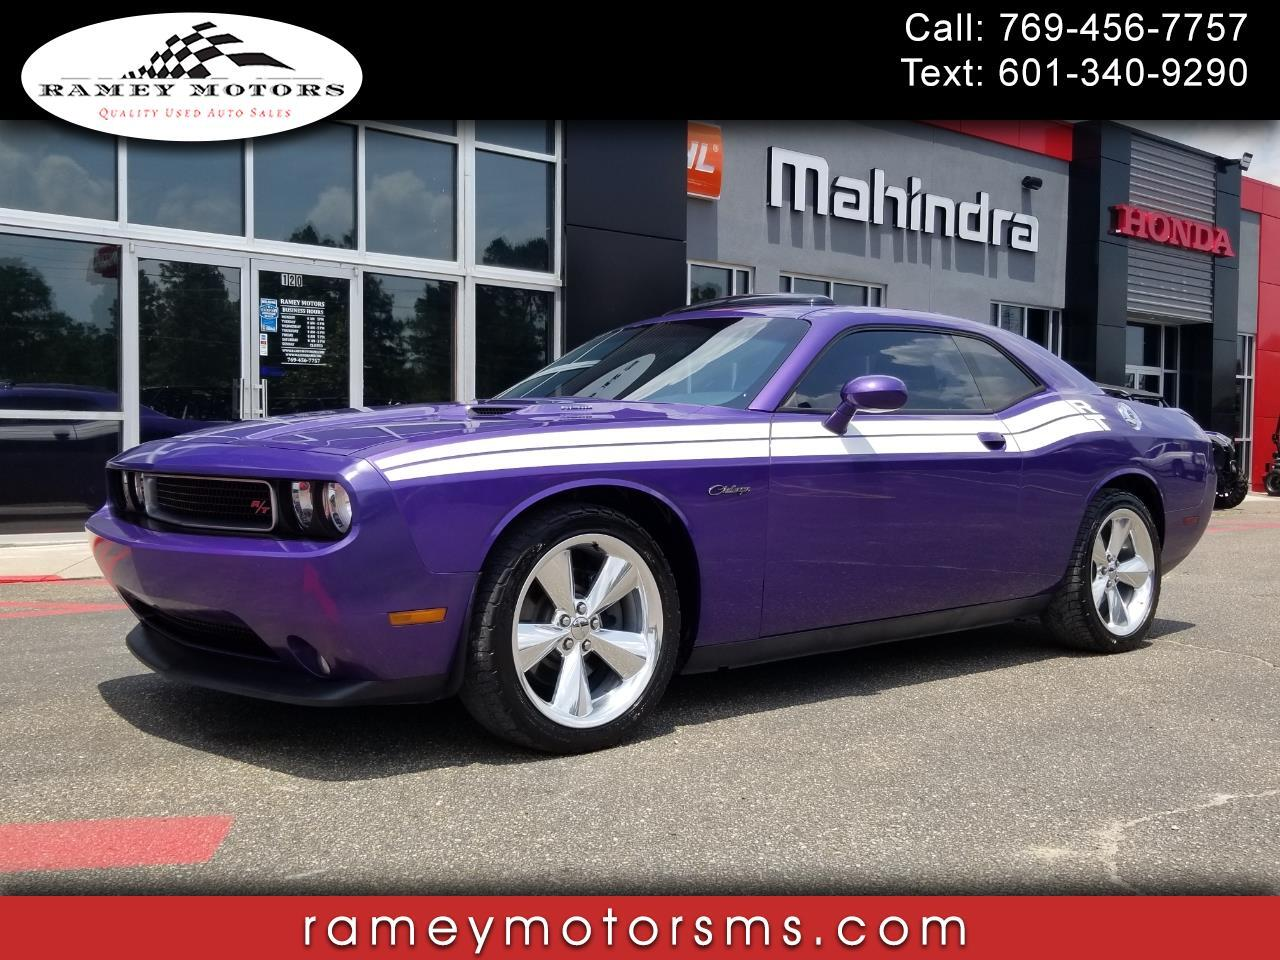 2014 Dodge Challenger R/T Classic